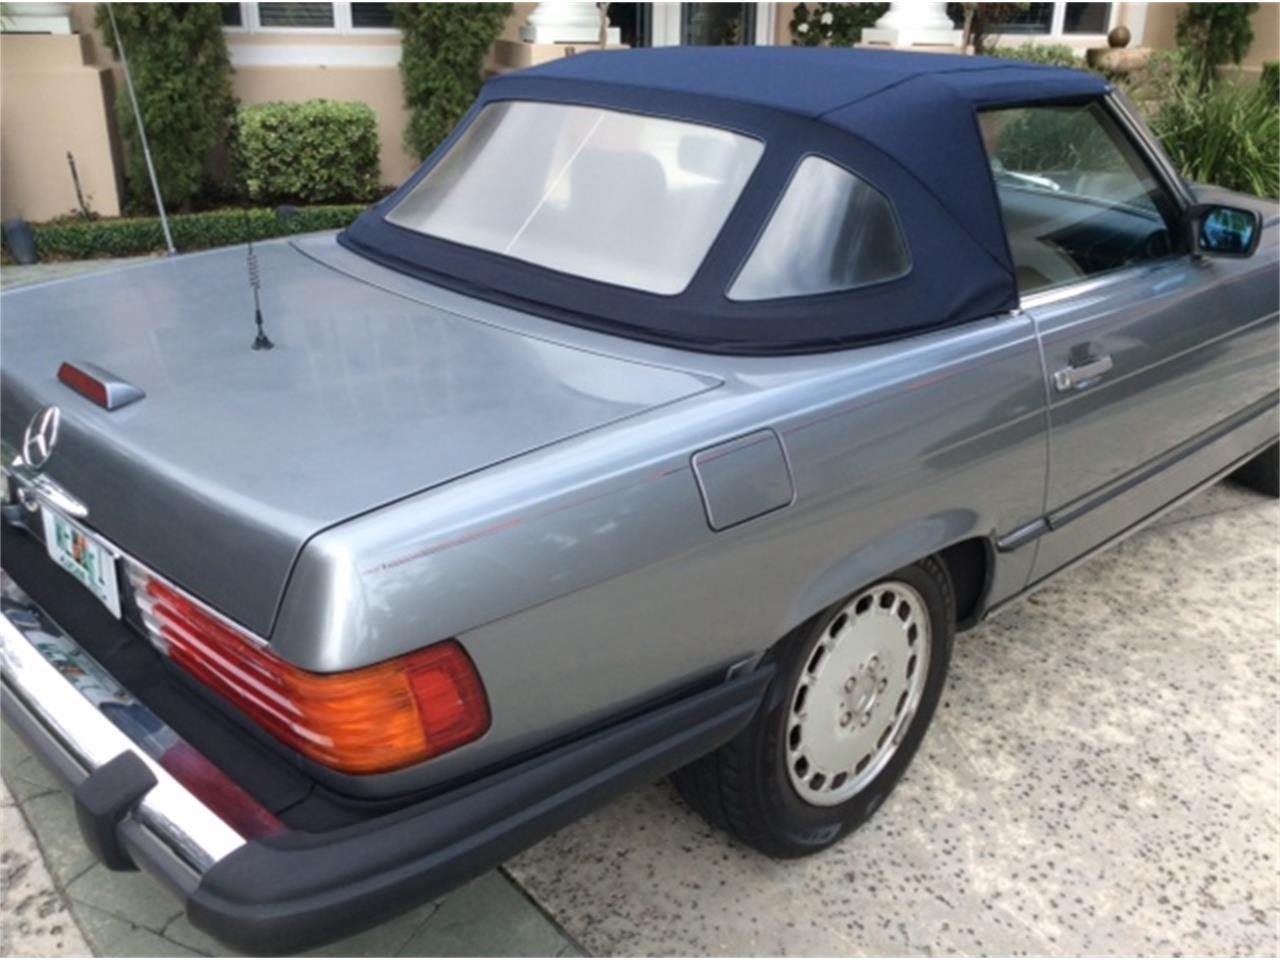 Large Picture of '89 Mercedes-Benz 560SL located in Ponte Vedra Beach Florida - $15,000.00 - G9PN